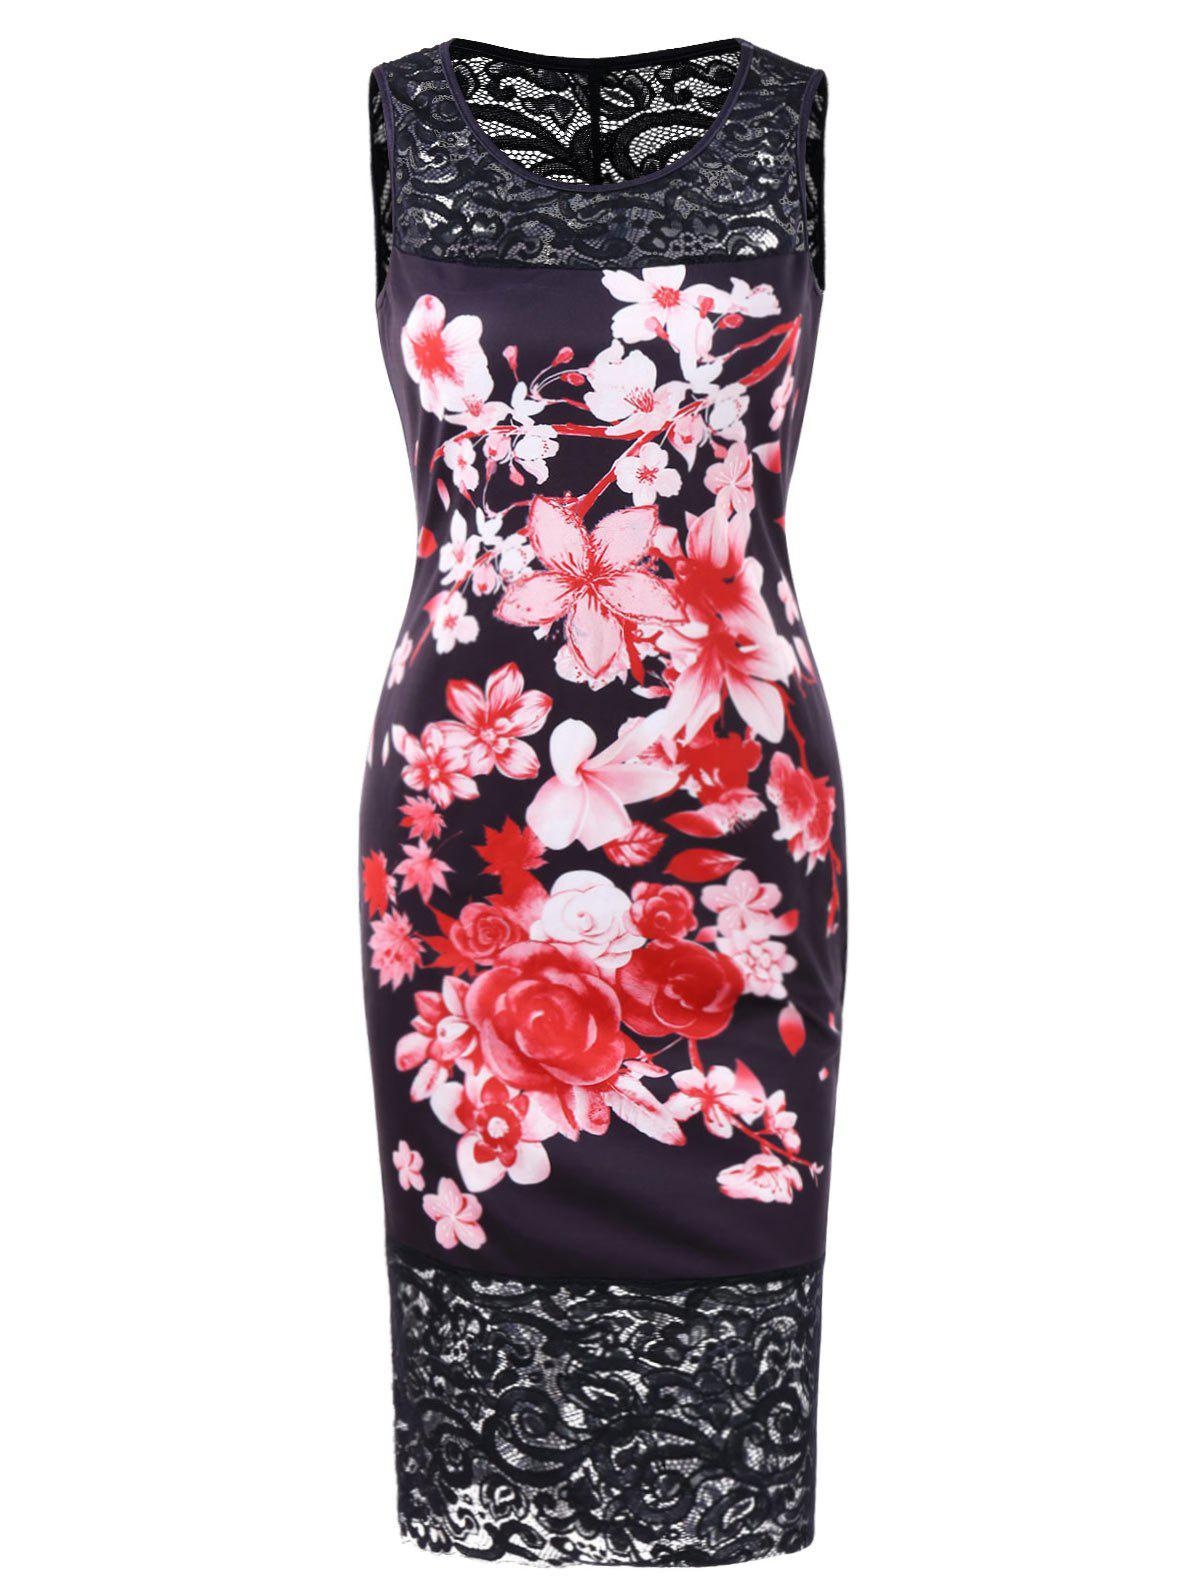 257f9140ebf7 75% OFF] Floral Lace Panel Knee Length Dress | Rosegal